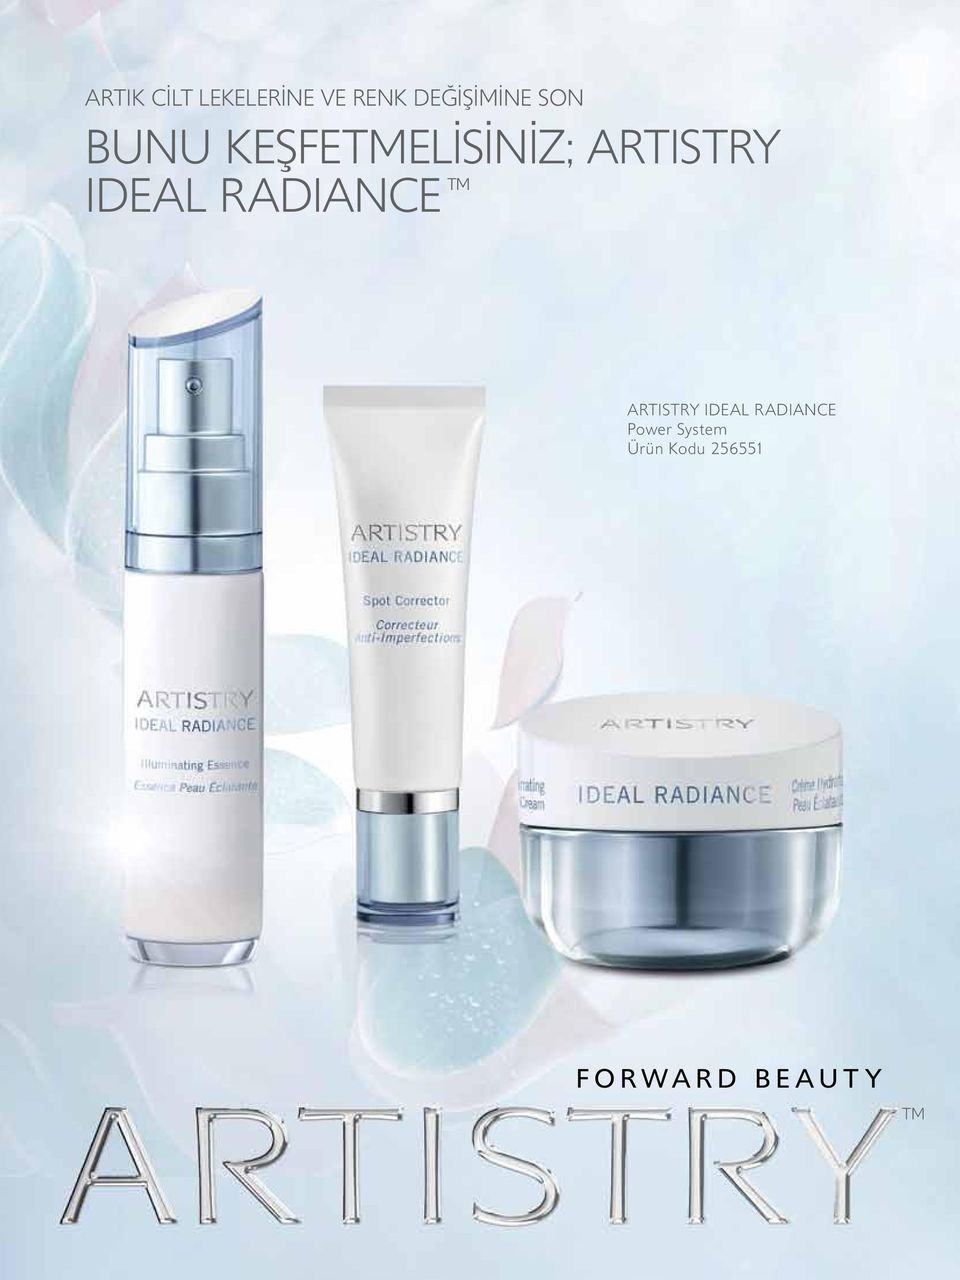 RADIANCE ARTISTRY IDEAL RADIANCE Power